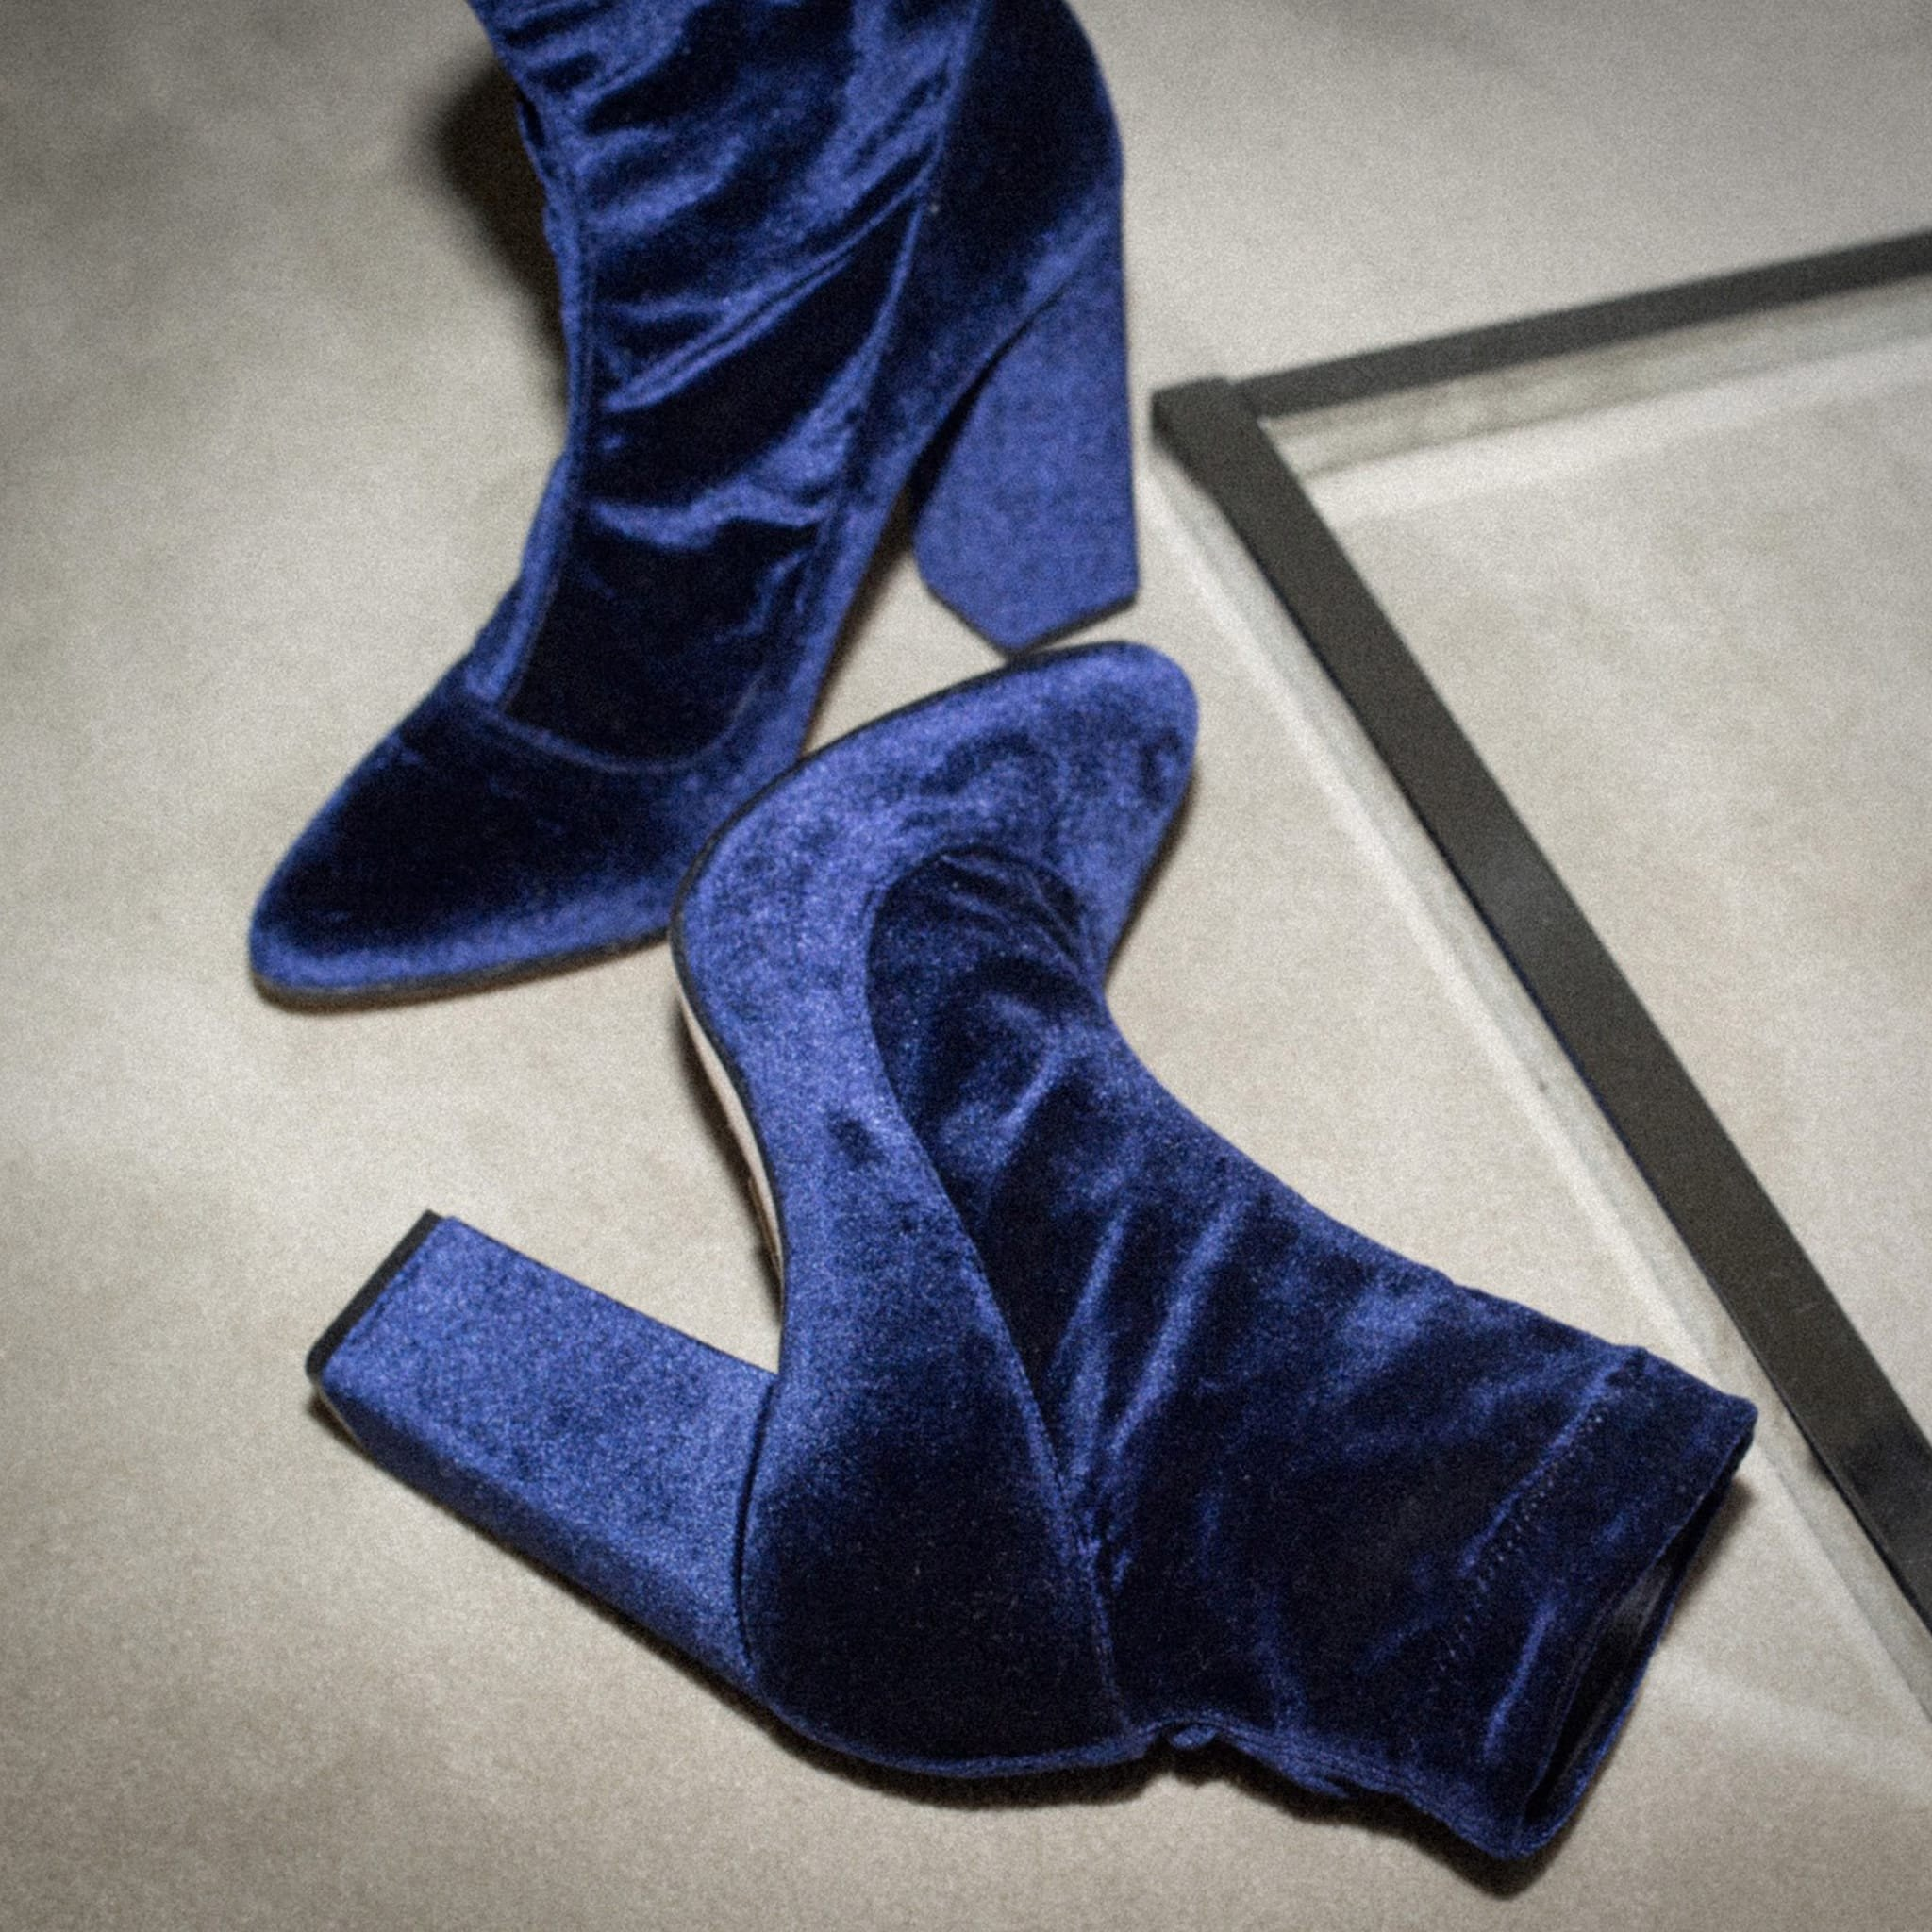 Tamara Mellon Caress navy velvet boots